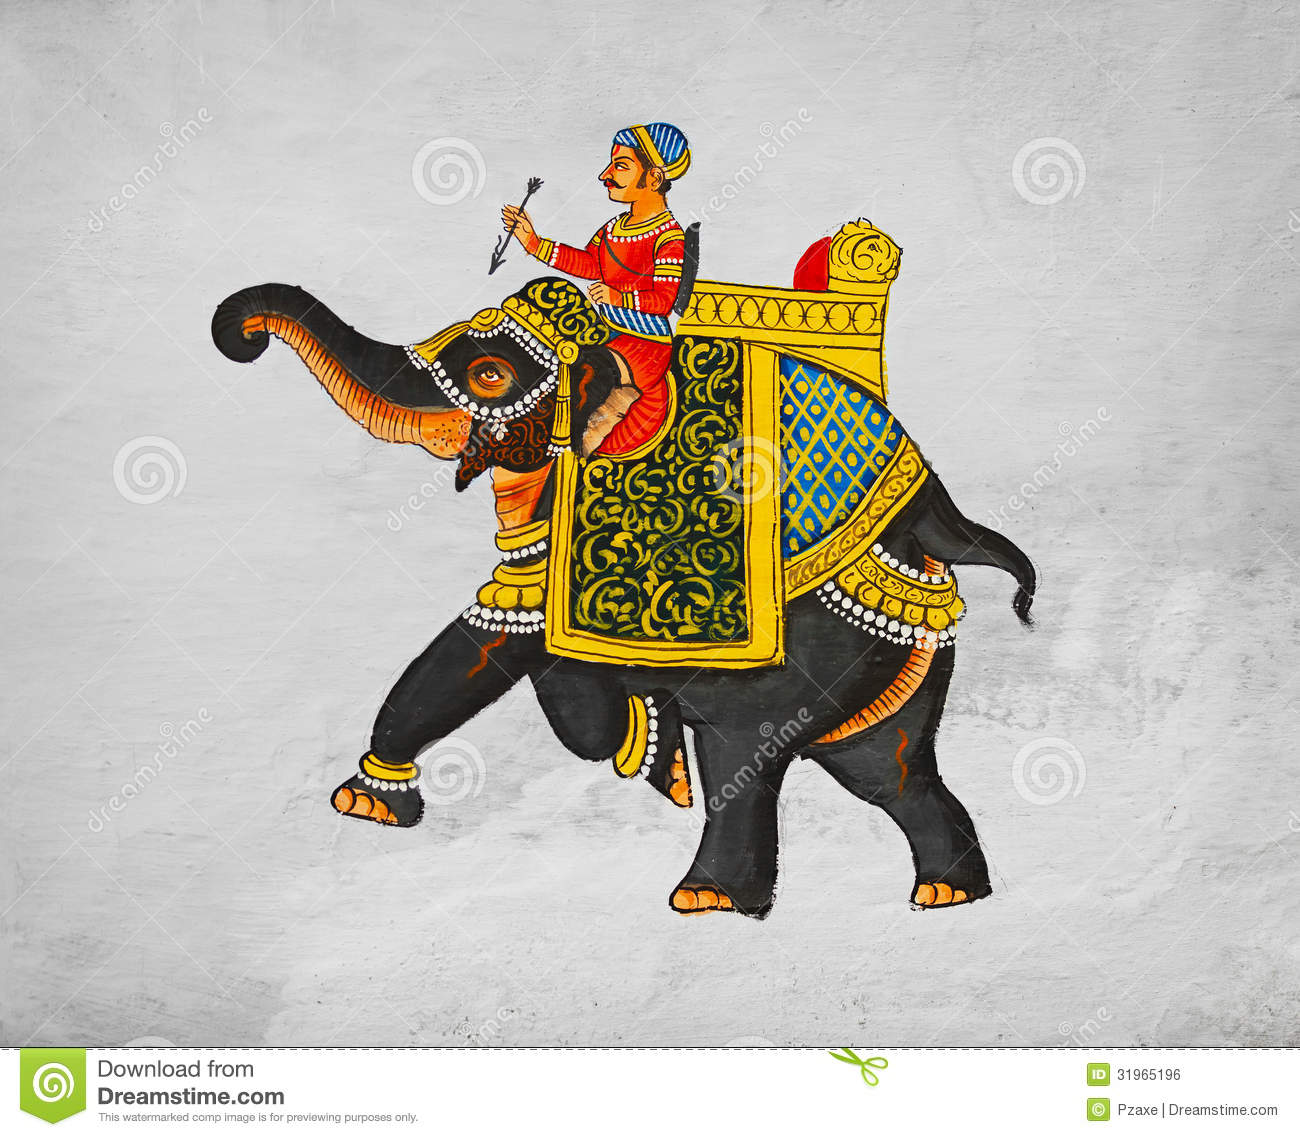 Traditional mural - image of maharaja of riding on an elephant.